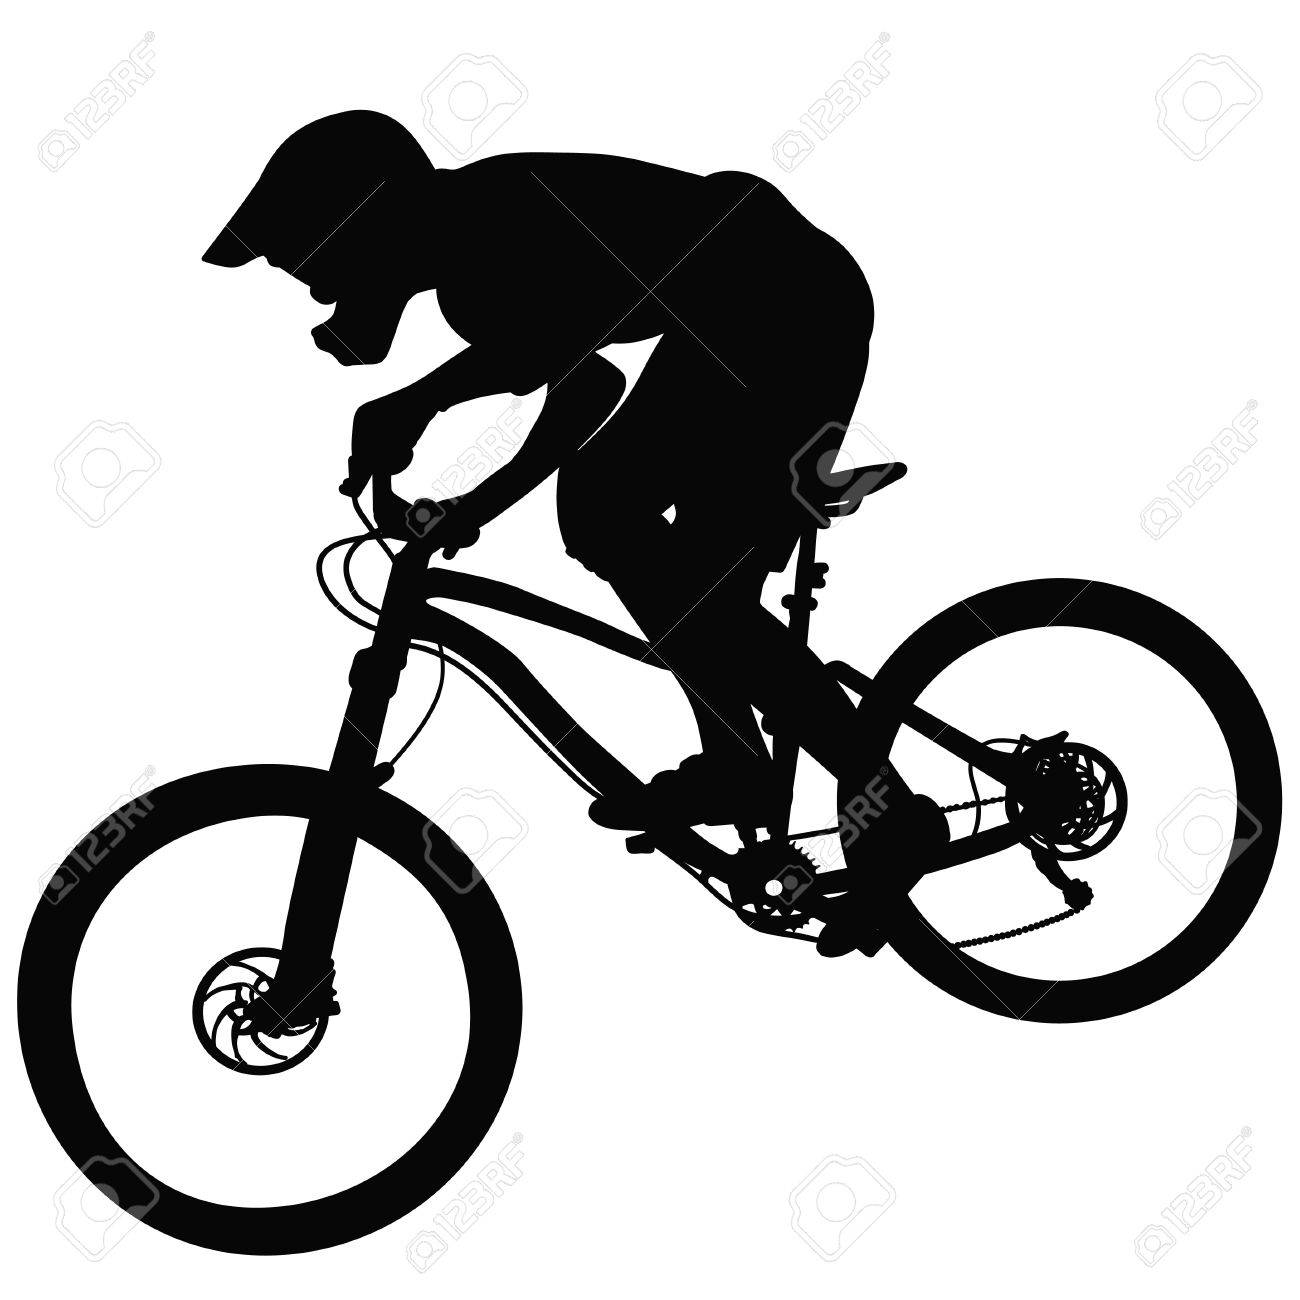 Bike Race On A Mountain Slope Silhouette Vector Royalty Free